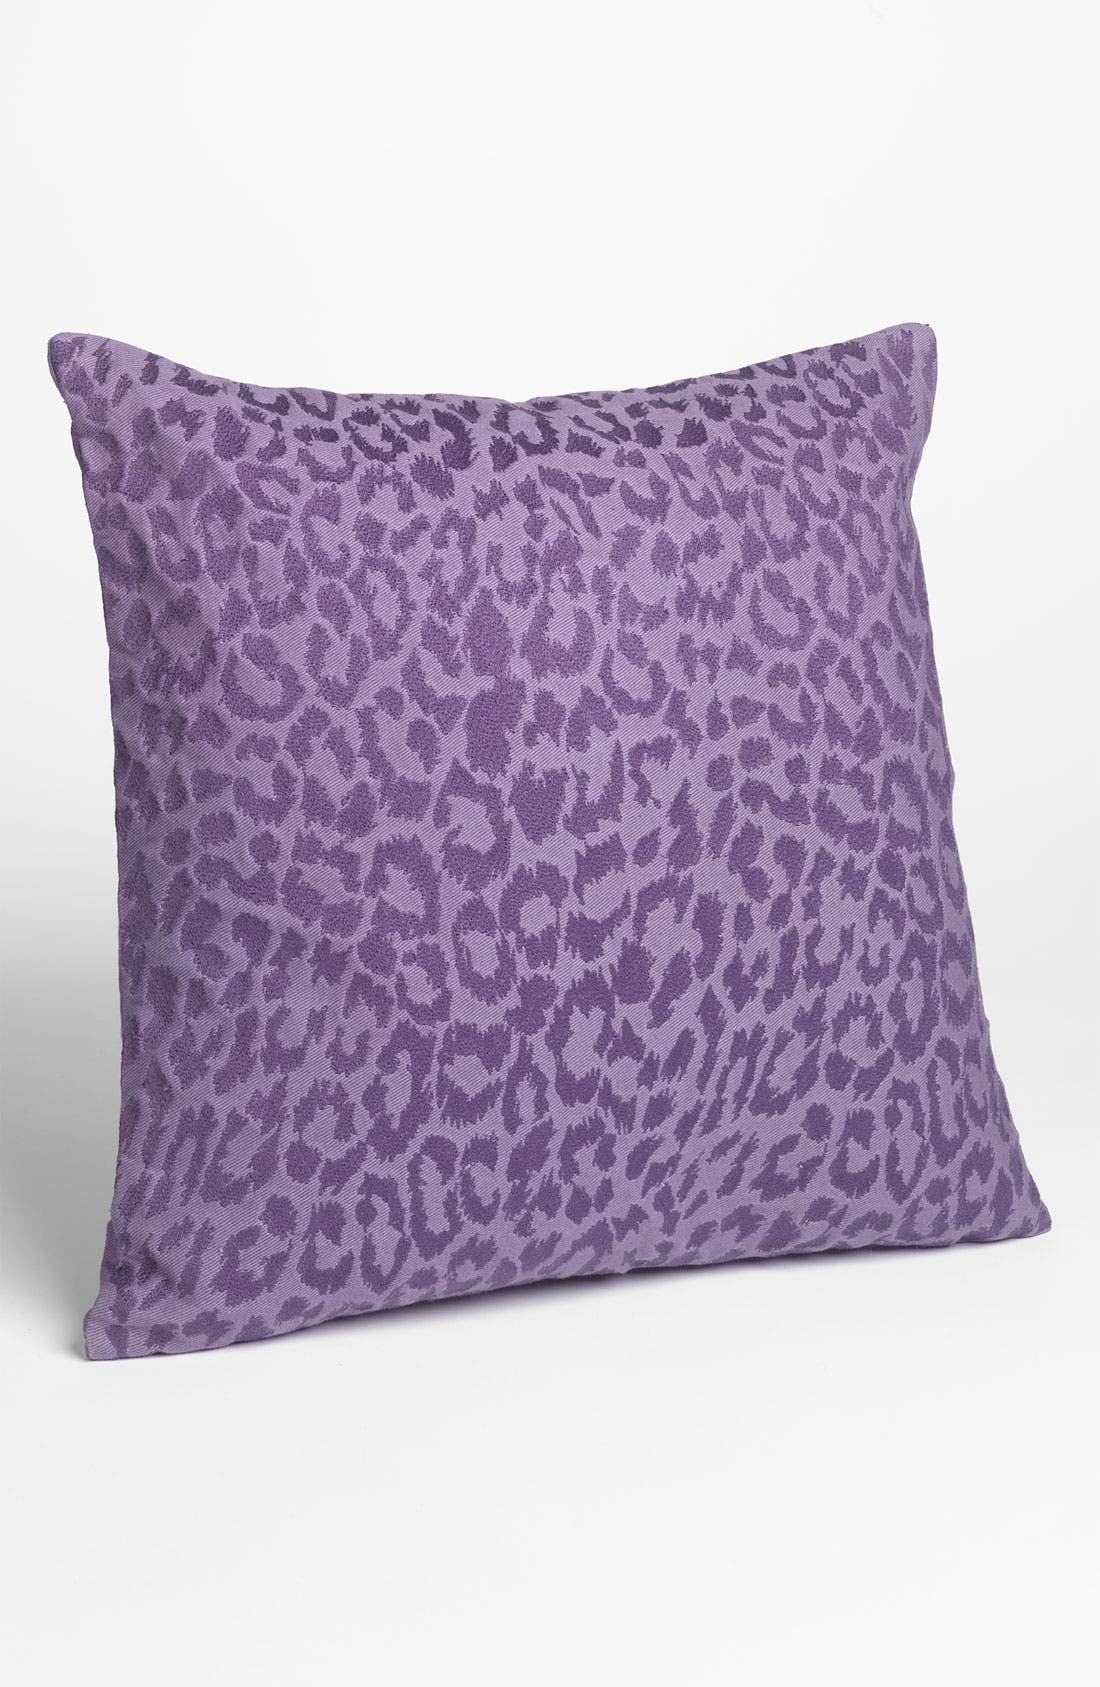 Alternate Image 1 Selected - Diane von Furstenberg 'Spotted Cat' Embroidered Pillow